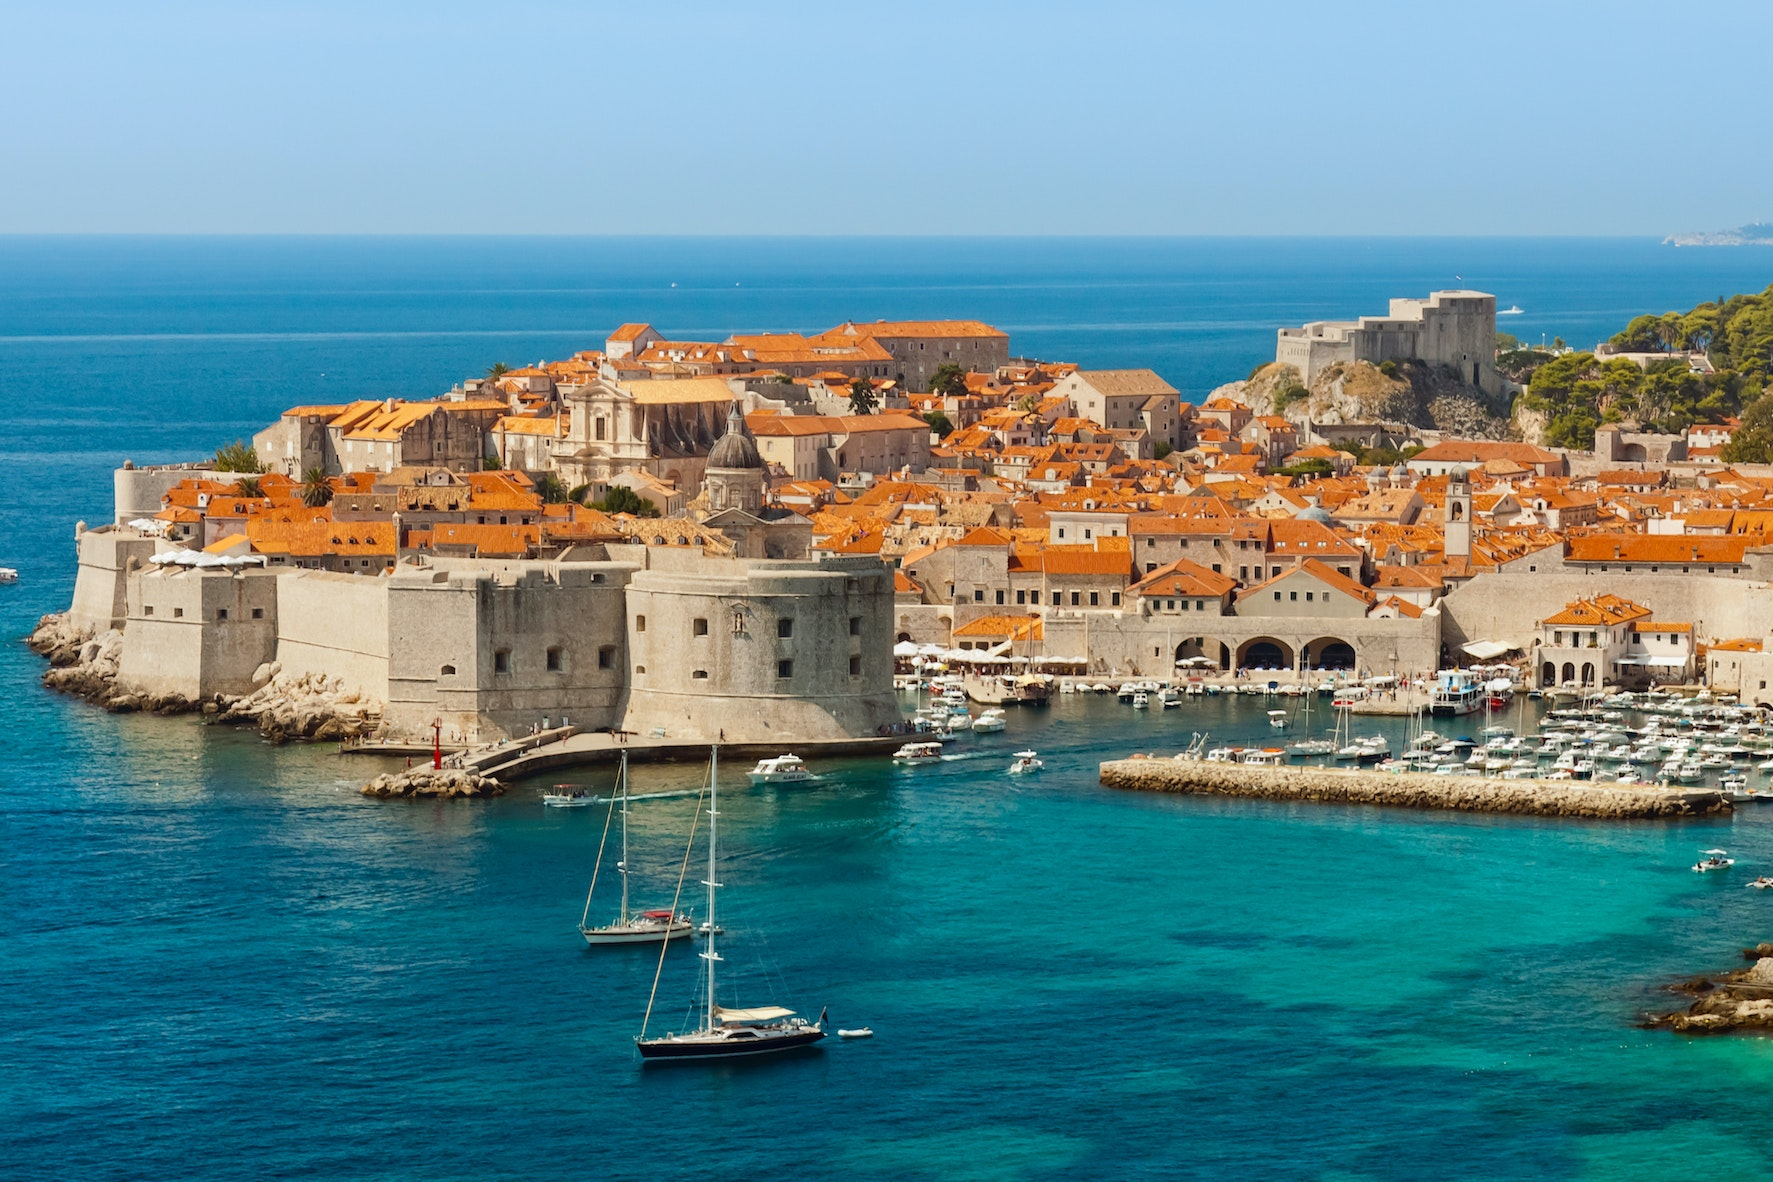 Dubrovnik's Old Town is protected by stone walls completed in the 16th century.